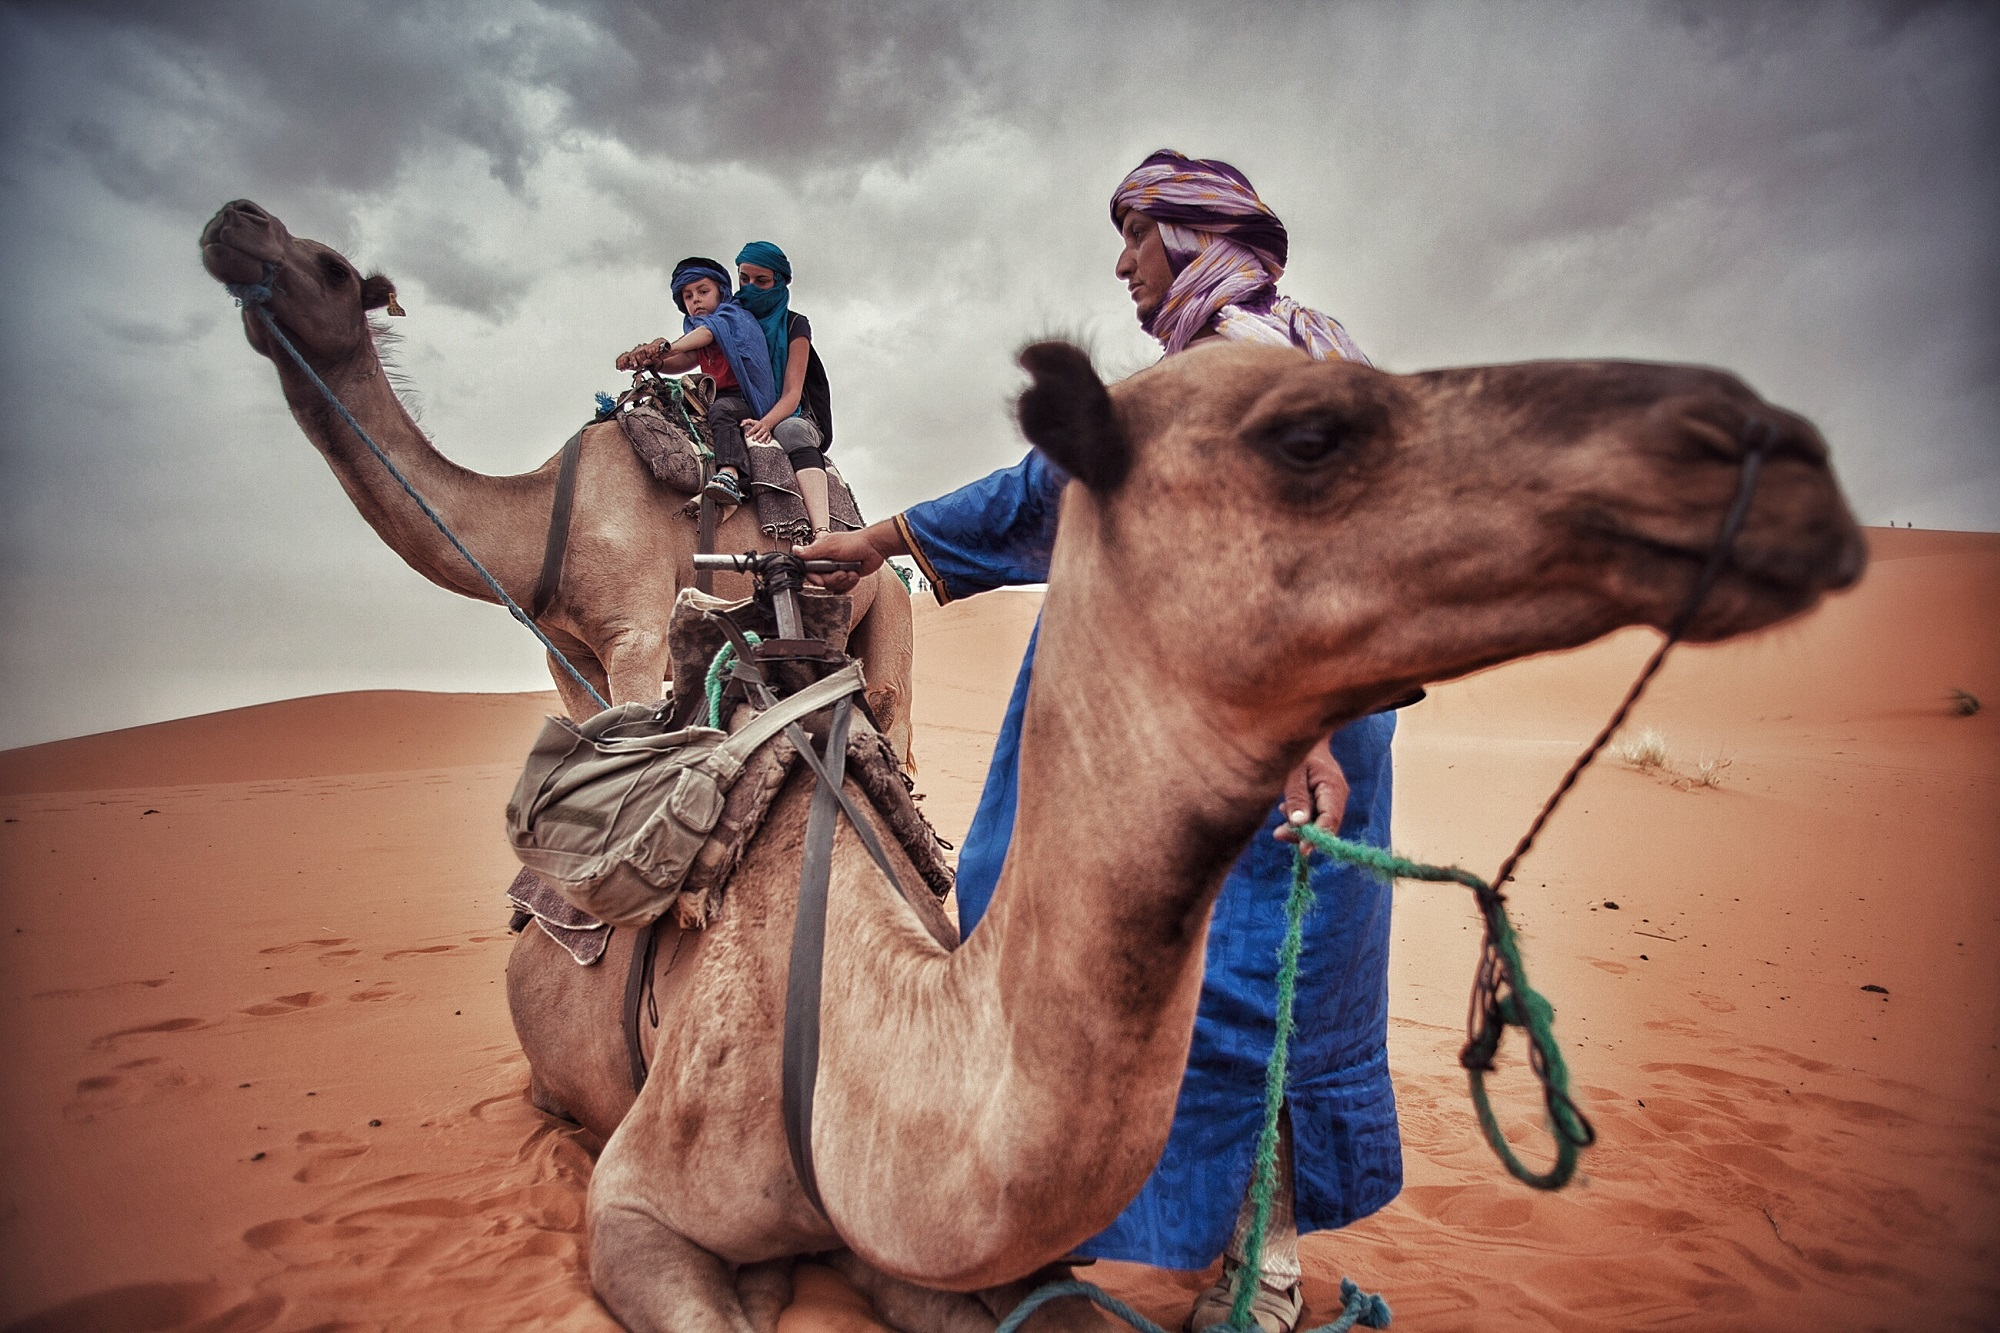 Camel riding in Merzouga, Morocco.